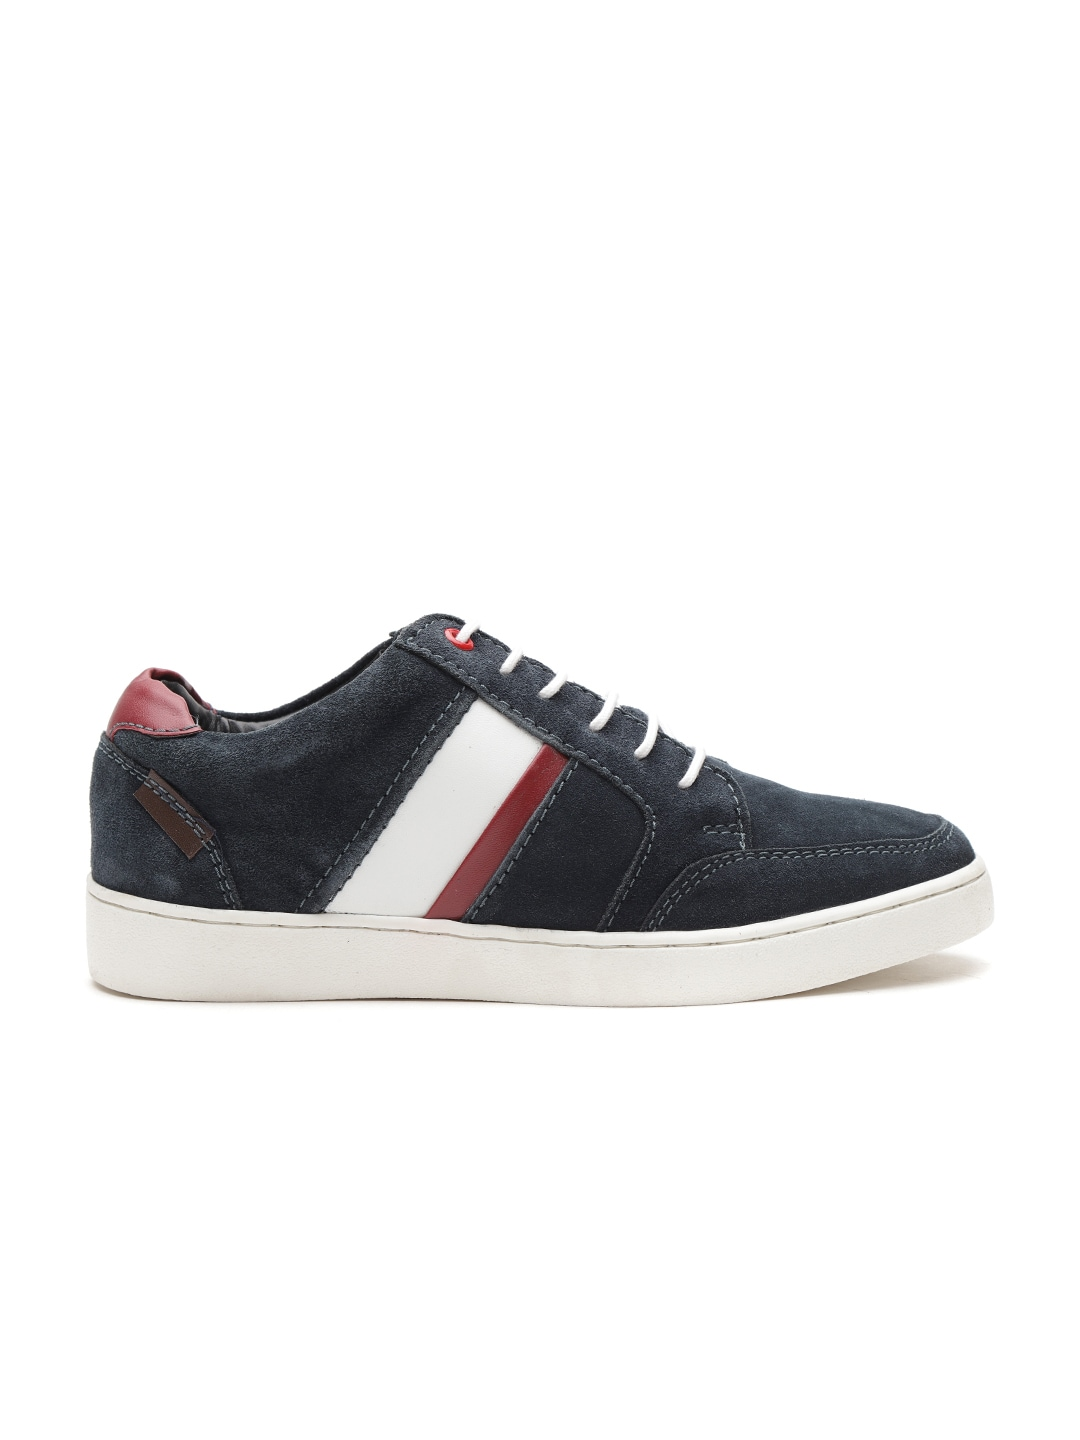 buy online 11025 628e2 Casual Shoes For Men - Buy Casual   Flat Shoes For Men   Myntra